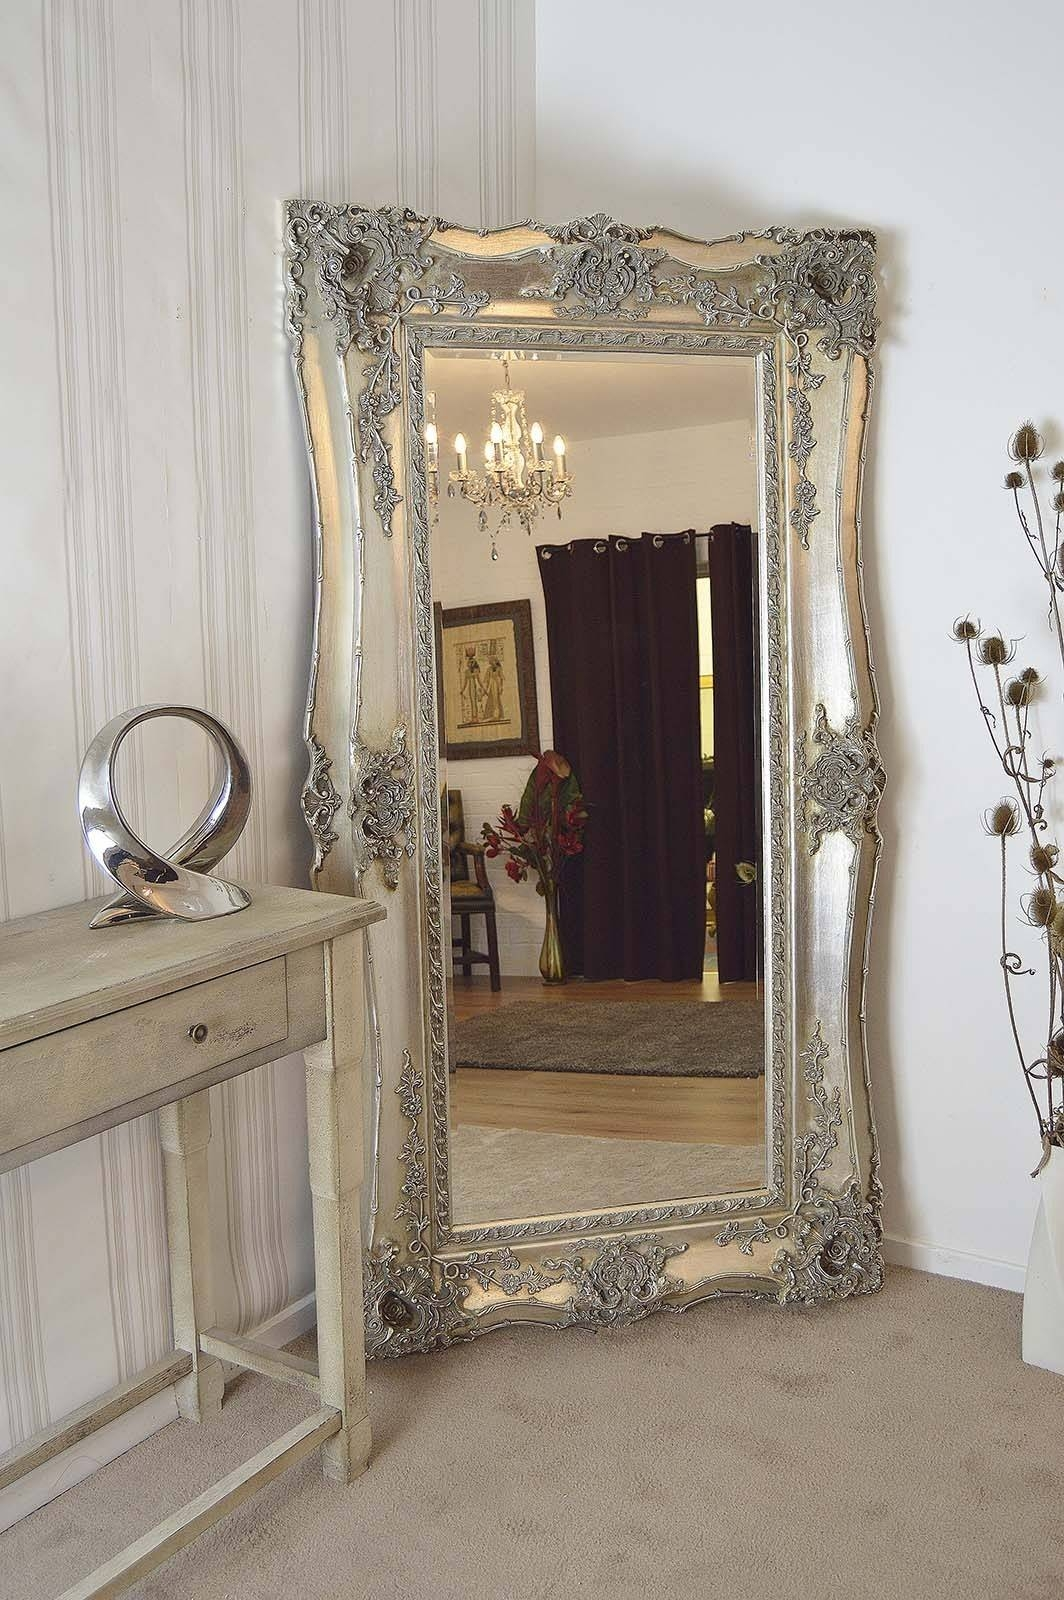 Bedroom Furniture : Large Gold Mirror Free Standing Mirror Wooden within Full Length Large Free Standing Mirrors (Image 3 of 15)